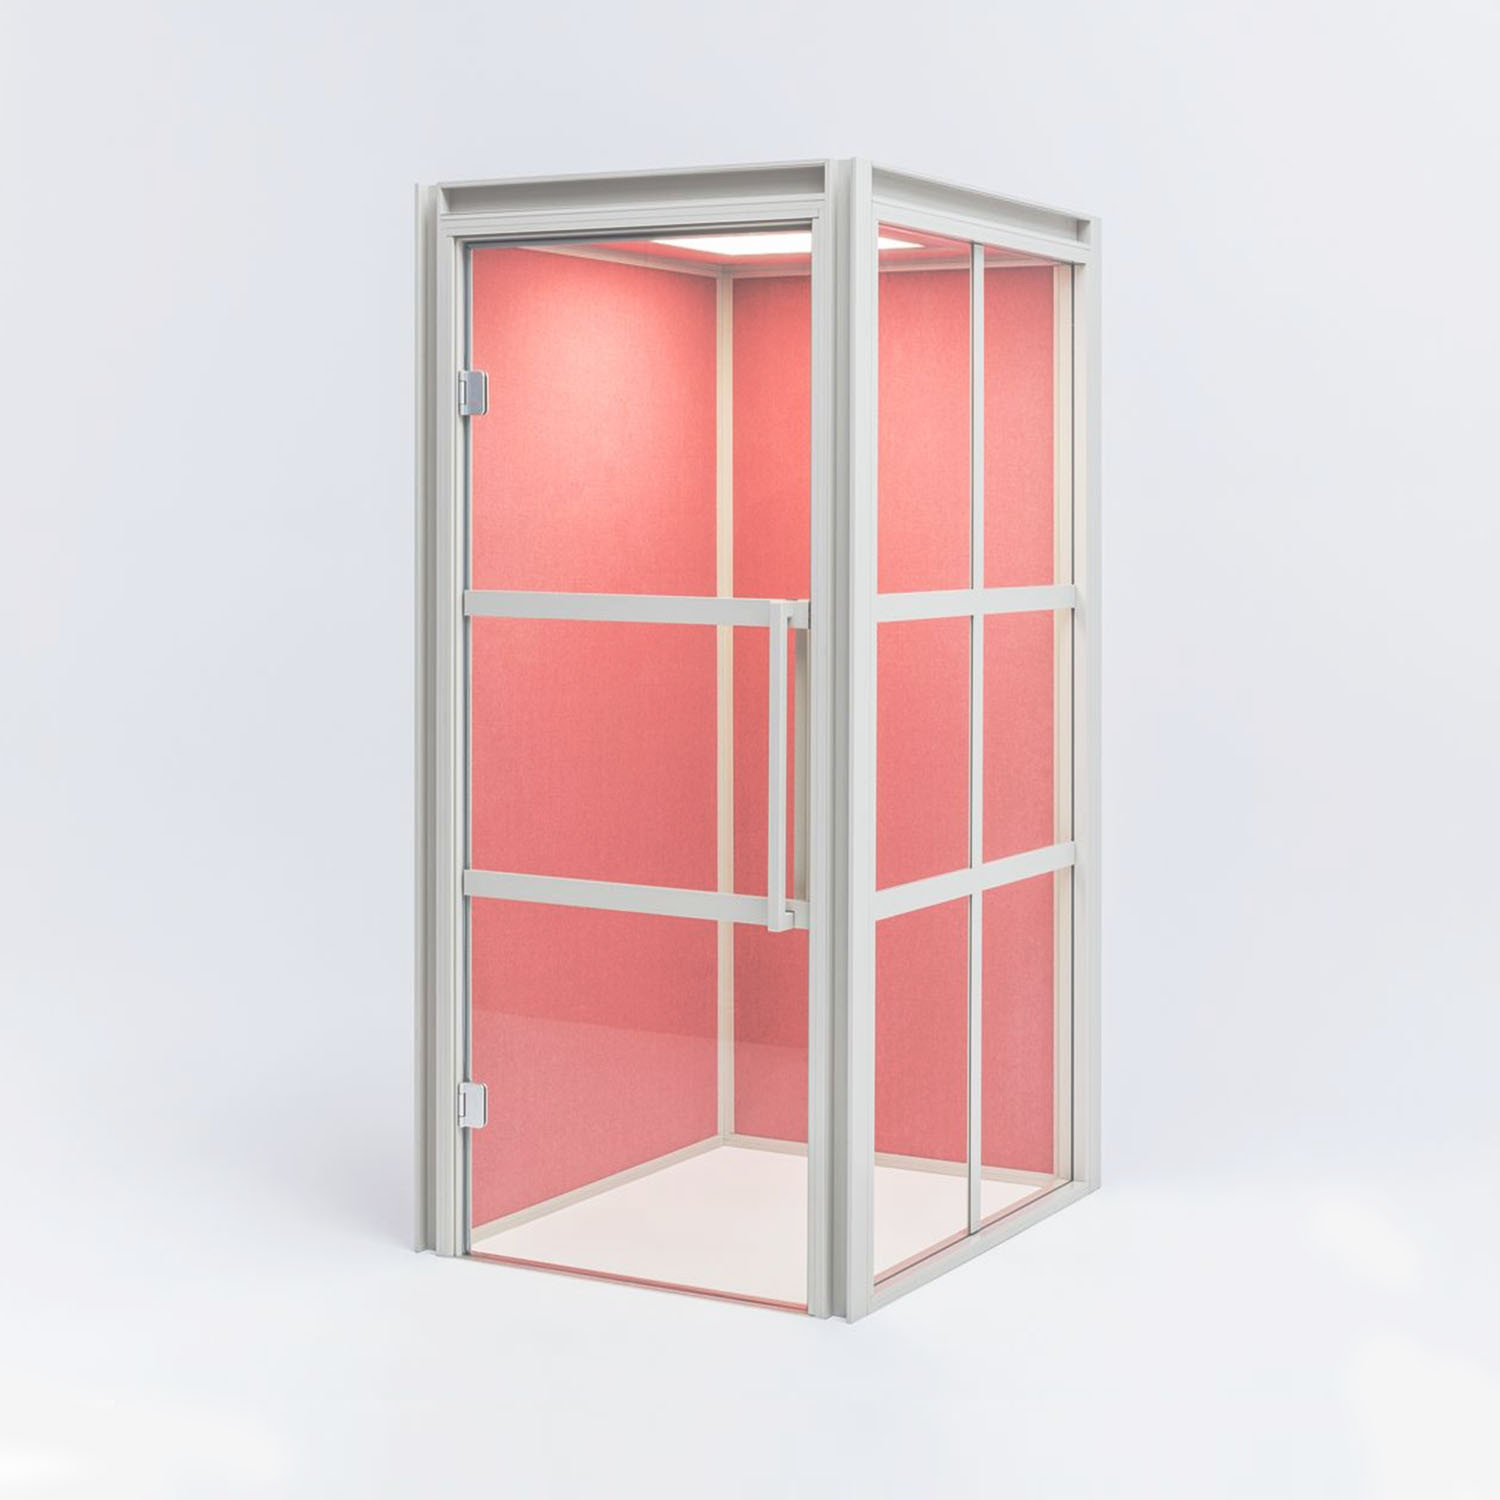 Hako Acoustic Phone Booth side angle Pink